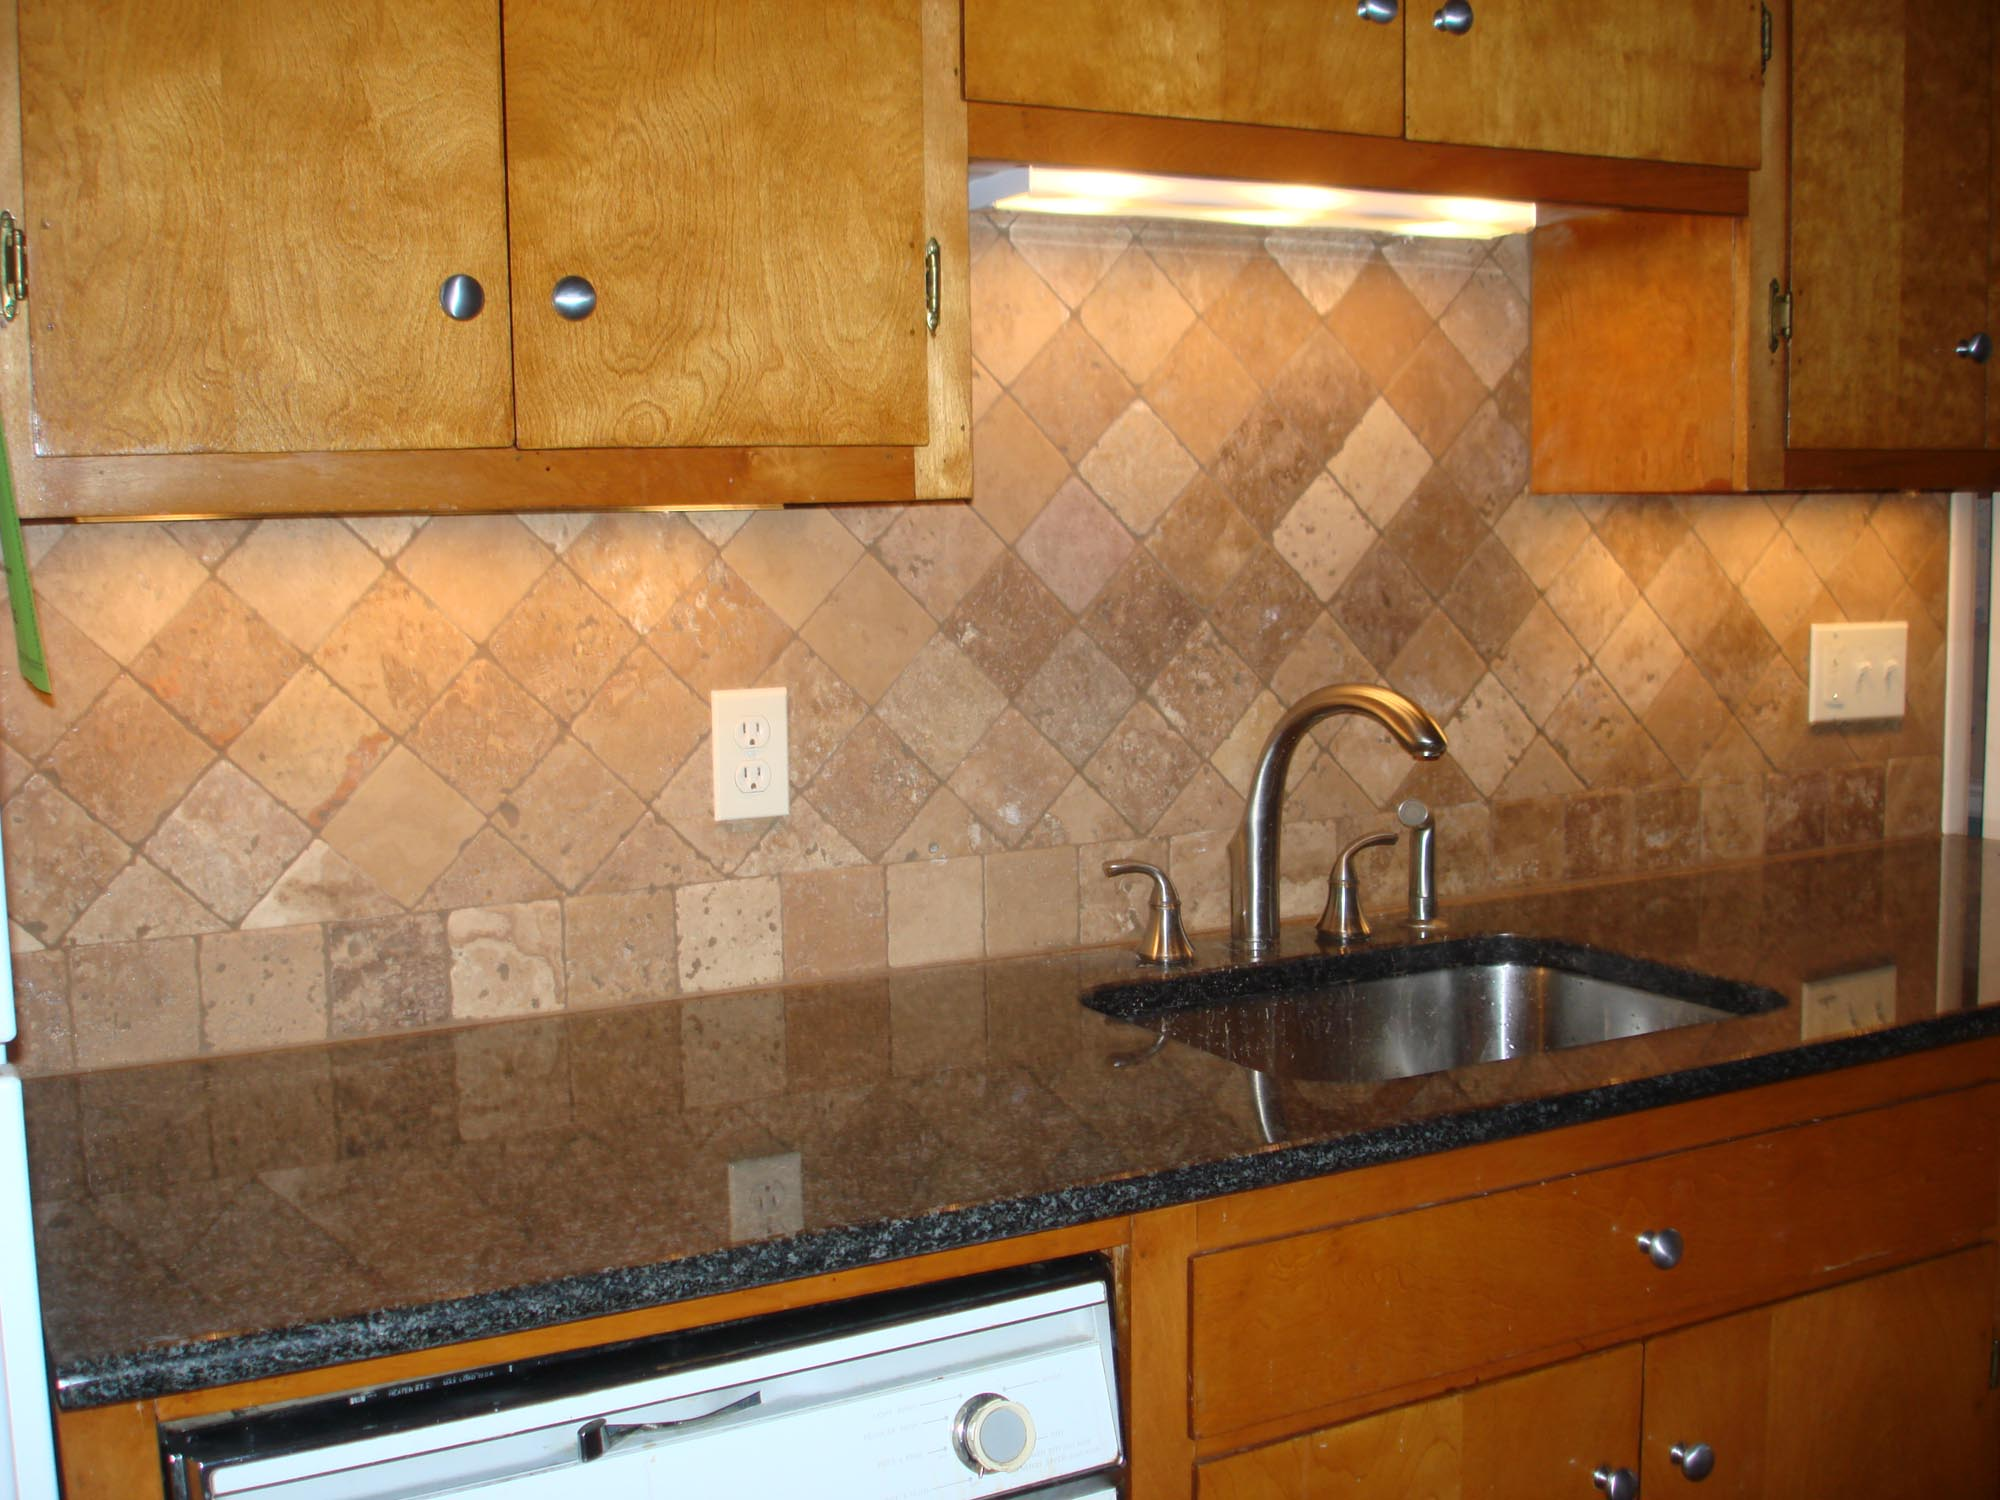 Tumbled travertine kitchen backsplash on diagonal new jersey custom tile - Custom kitchen backsplash tiles ...